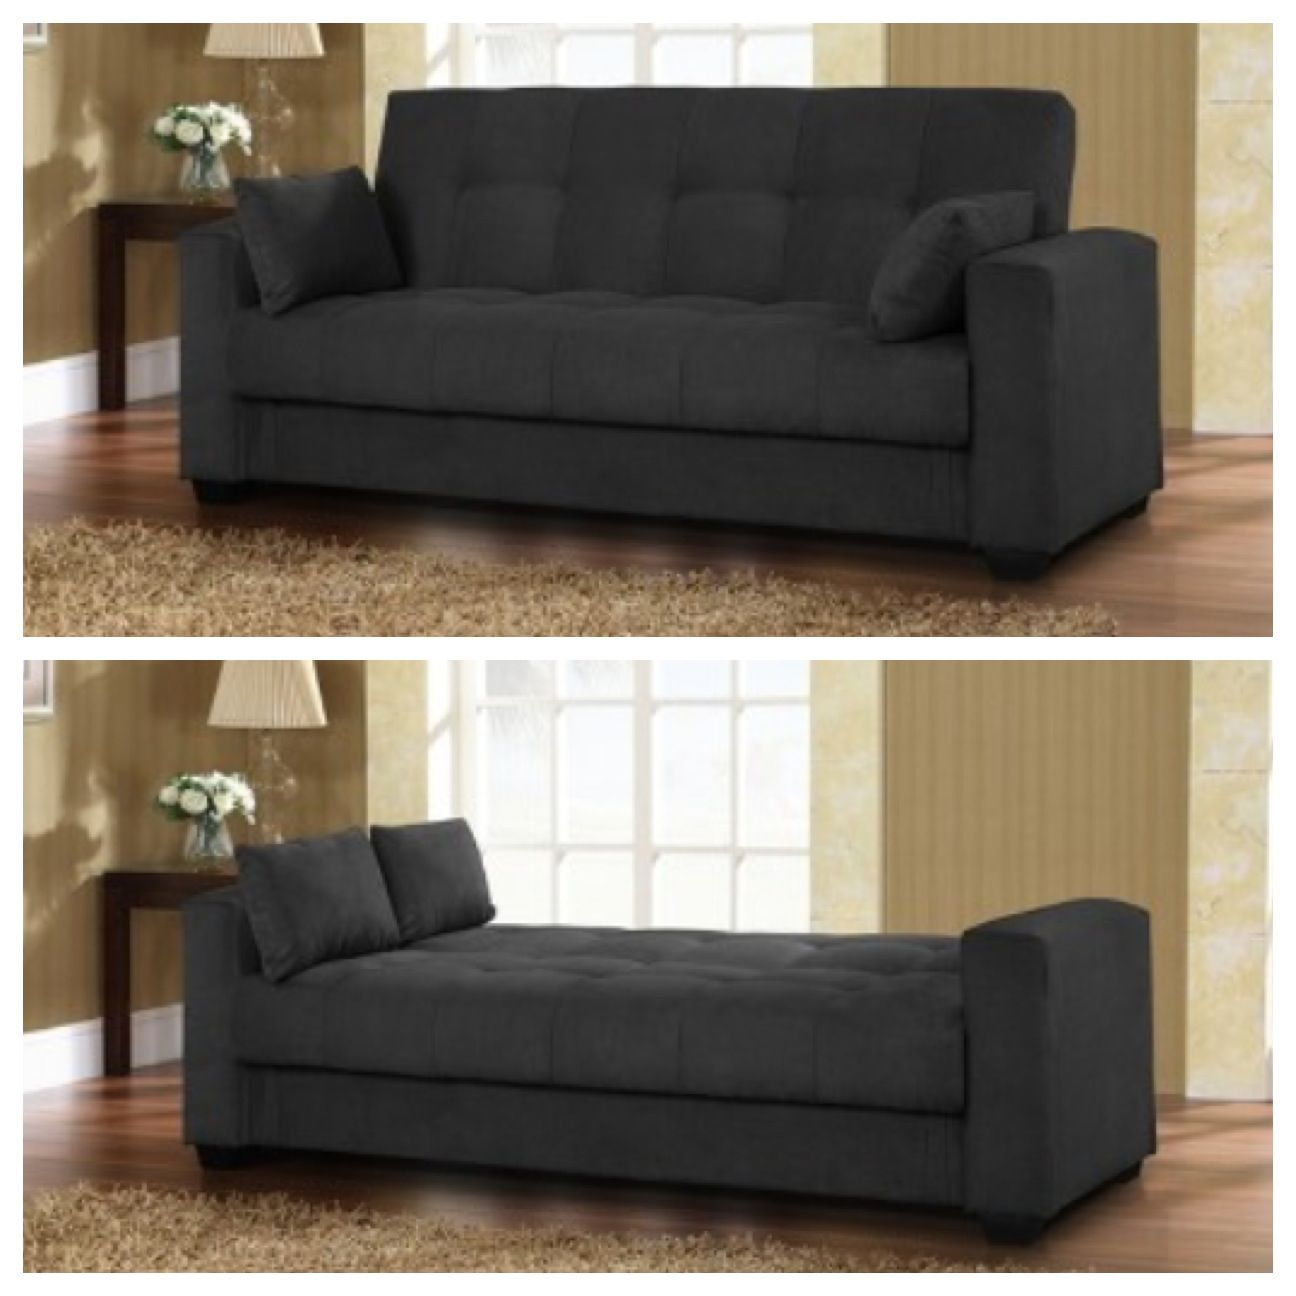 sleeper sofa from target.com | NYC Apartment Possibilities ...